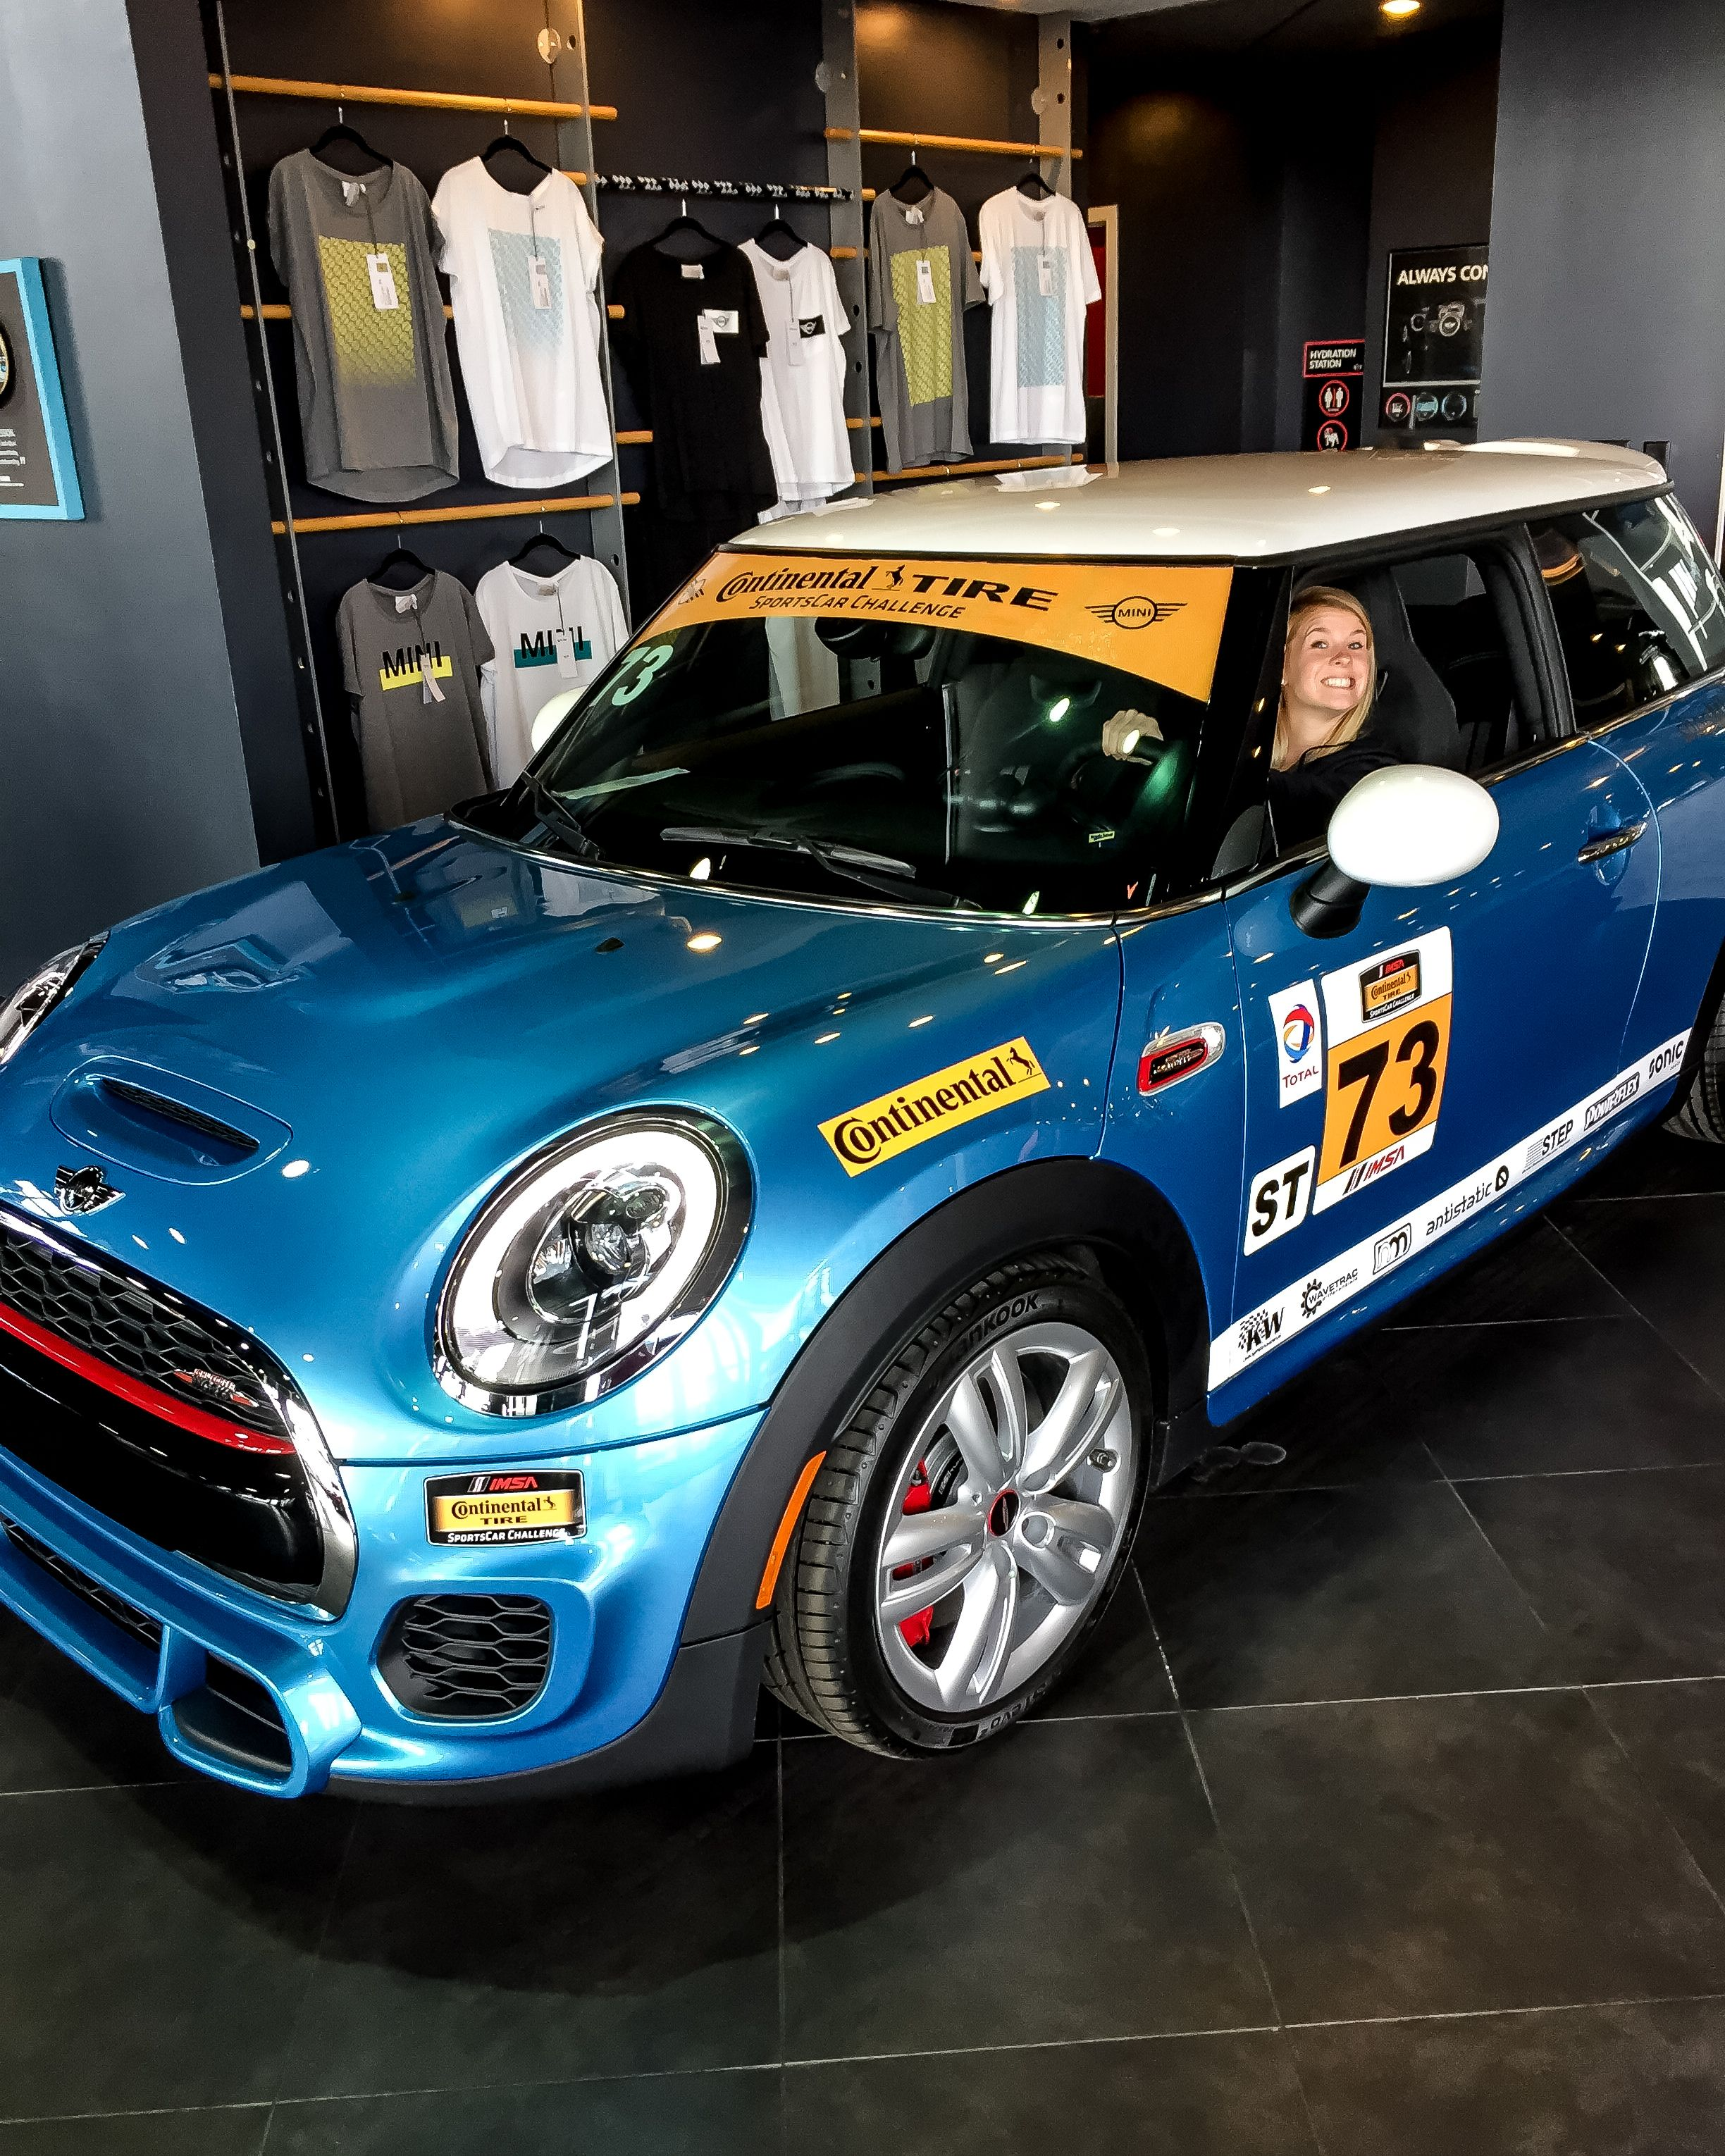 The Mini John Cooper Works Racing Team Returns To Action For Round 3 Of The 2017 Ctsc Season Catch The Circuit Of Mini Cars For Sale Mini Mini Cooper Clubman